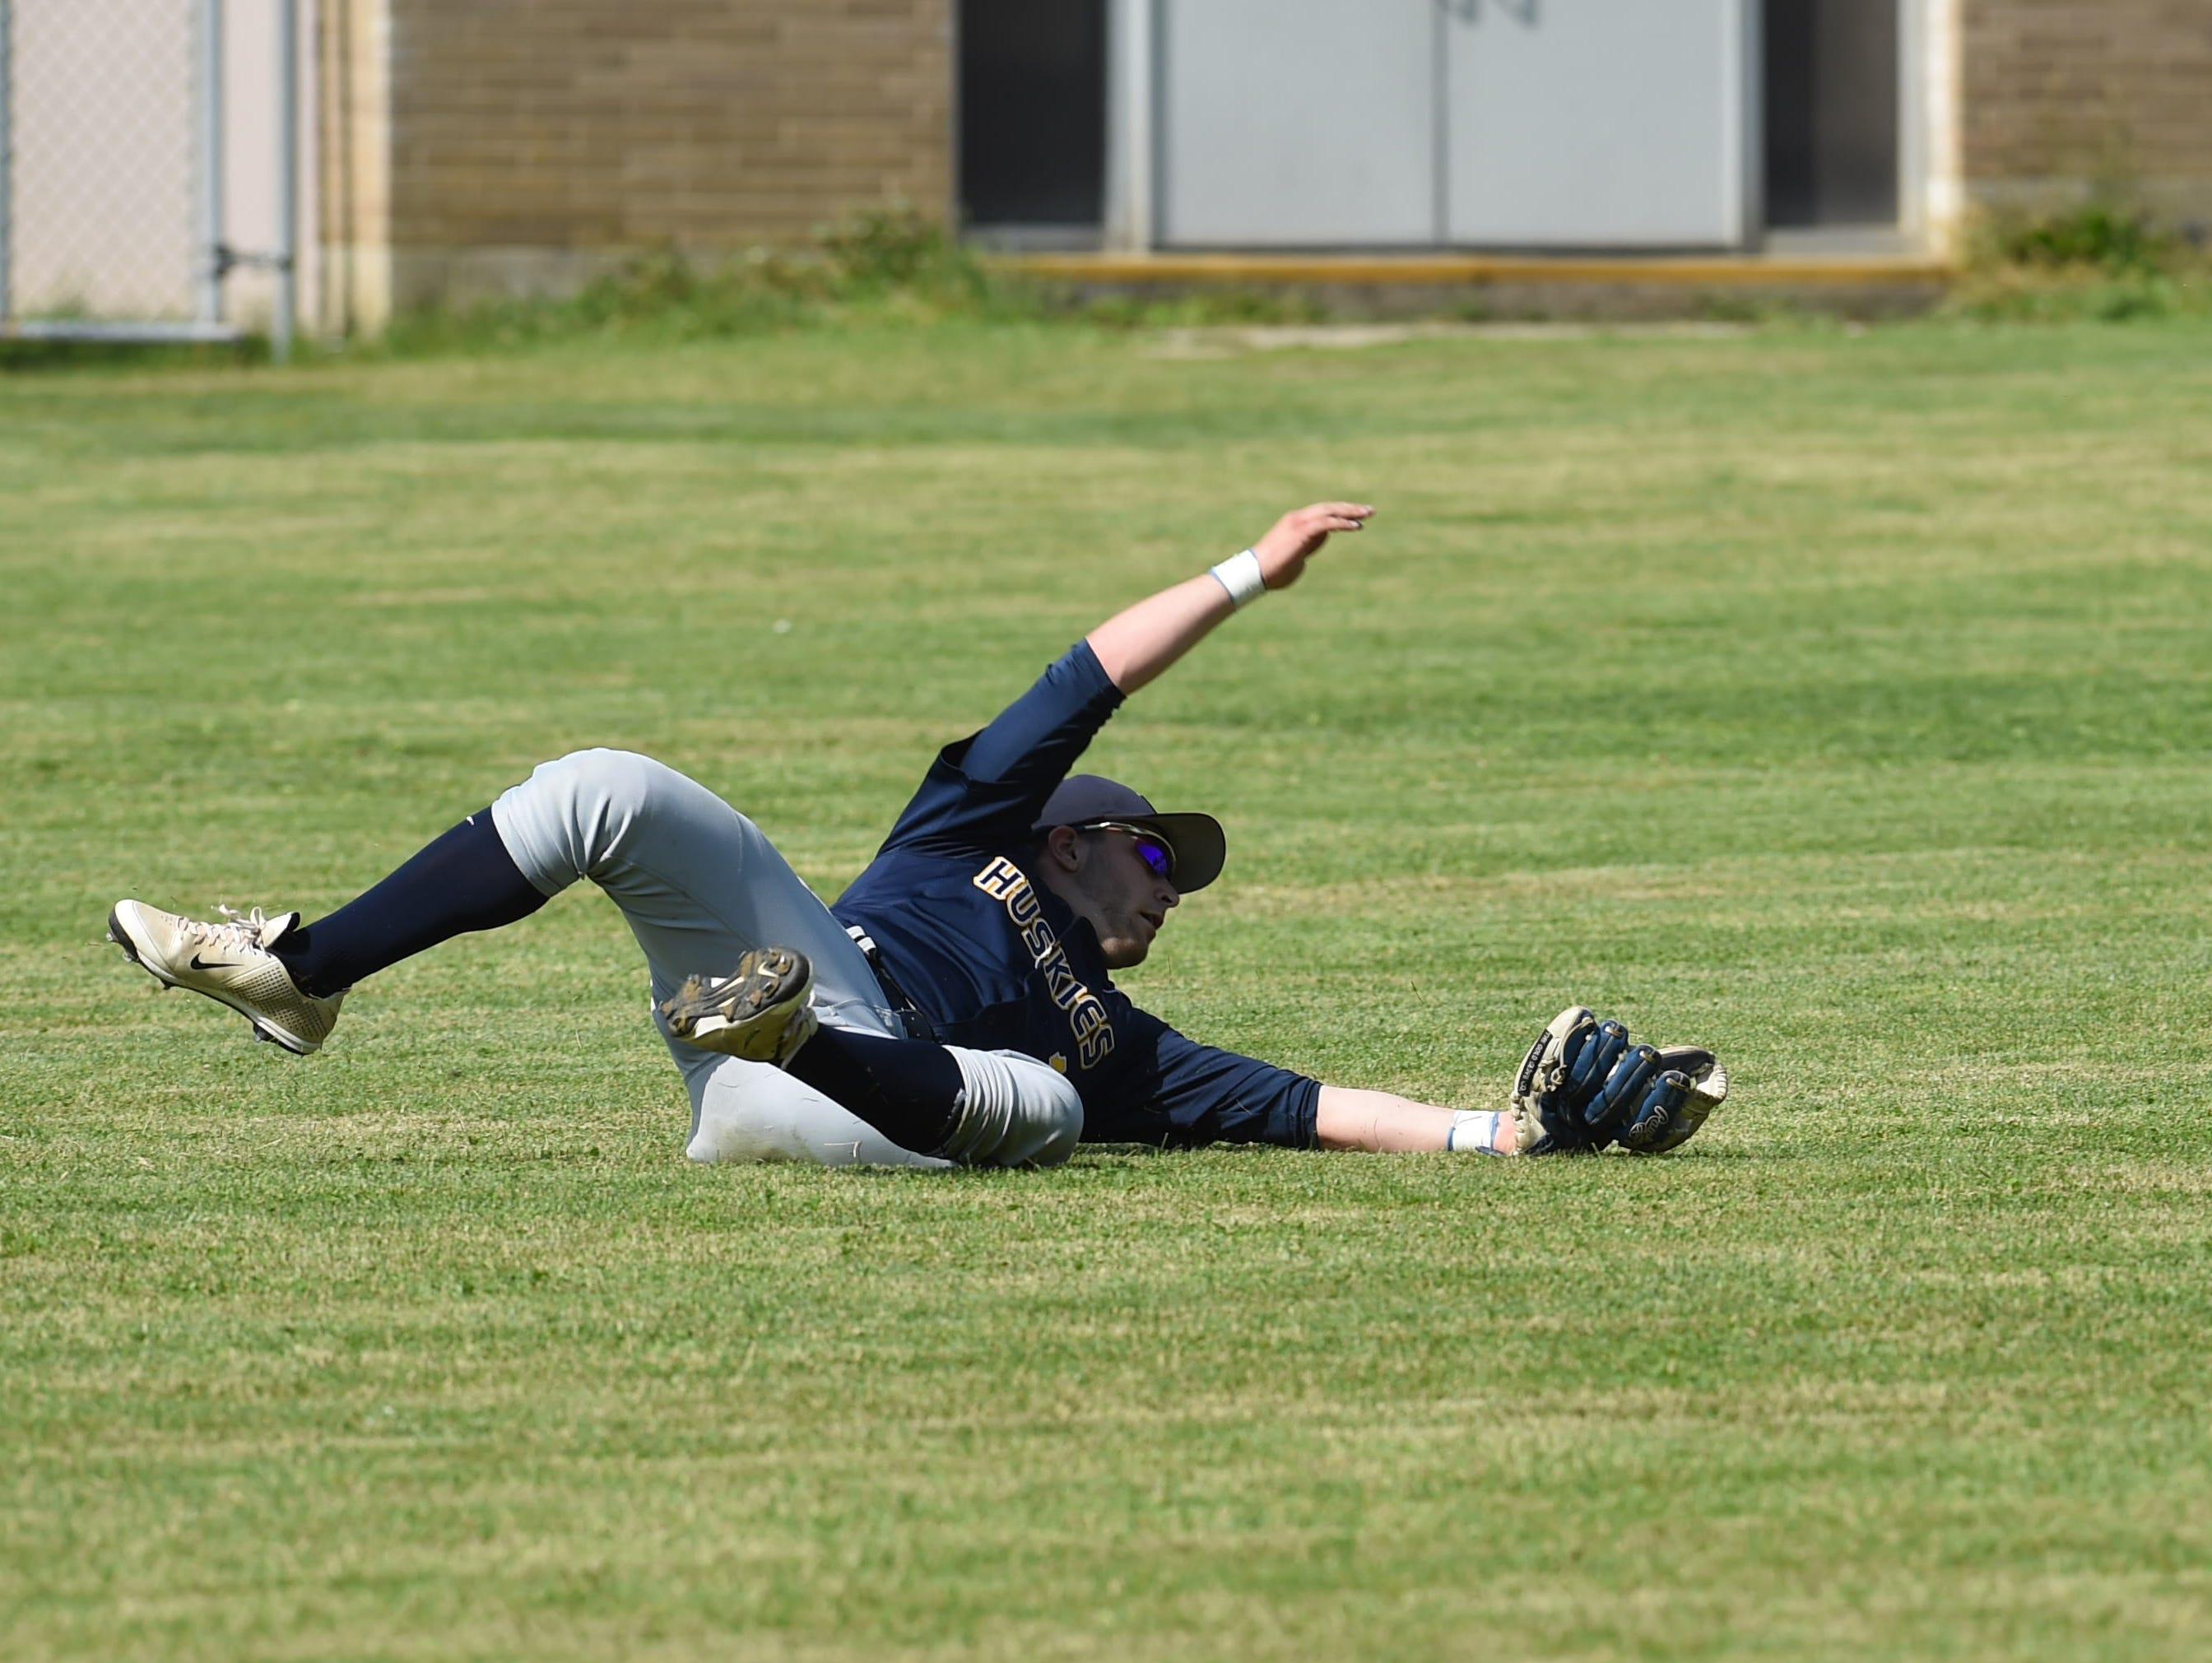 Highland senior outfielder Mike Malhiero makes a diving catch of a foul ball during a game last season against Spackenkill.